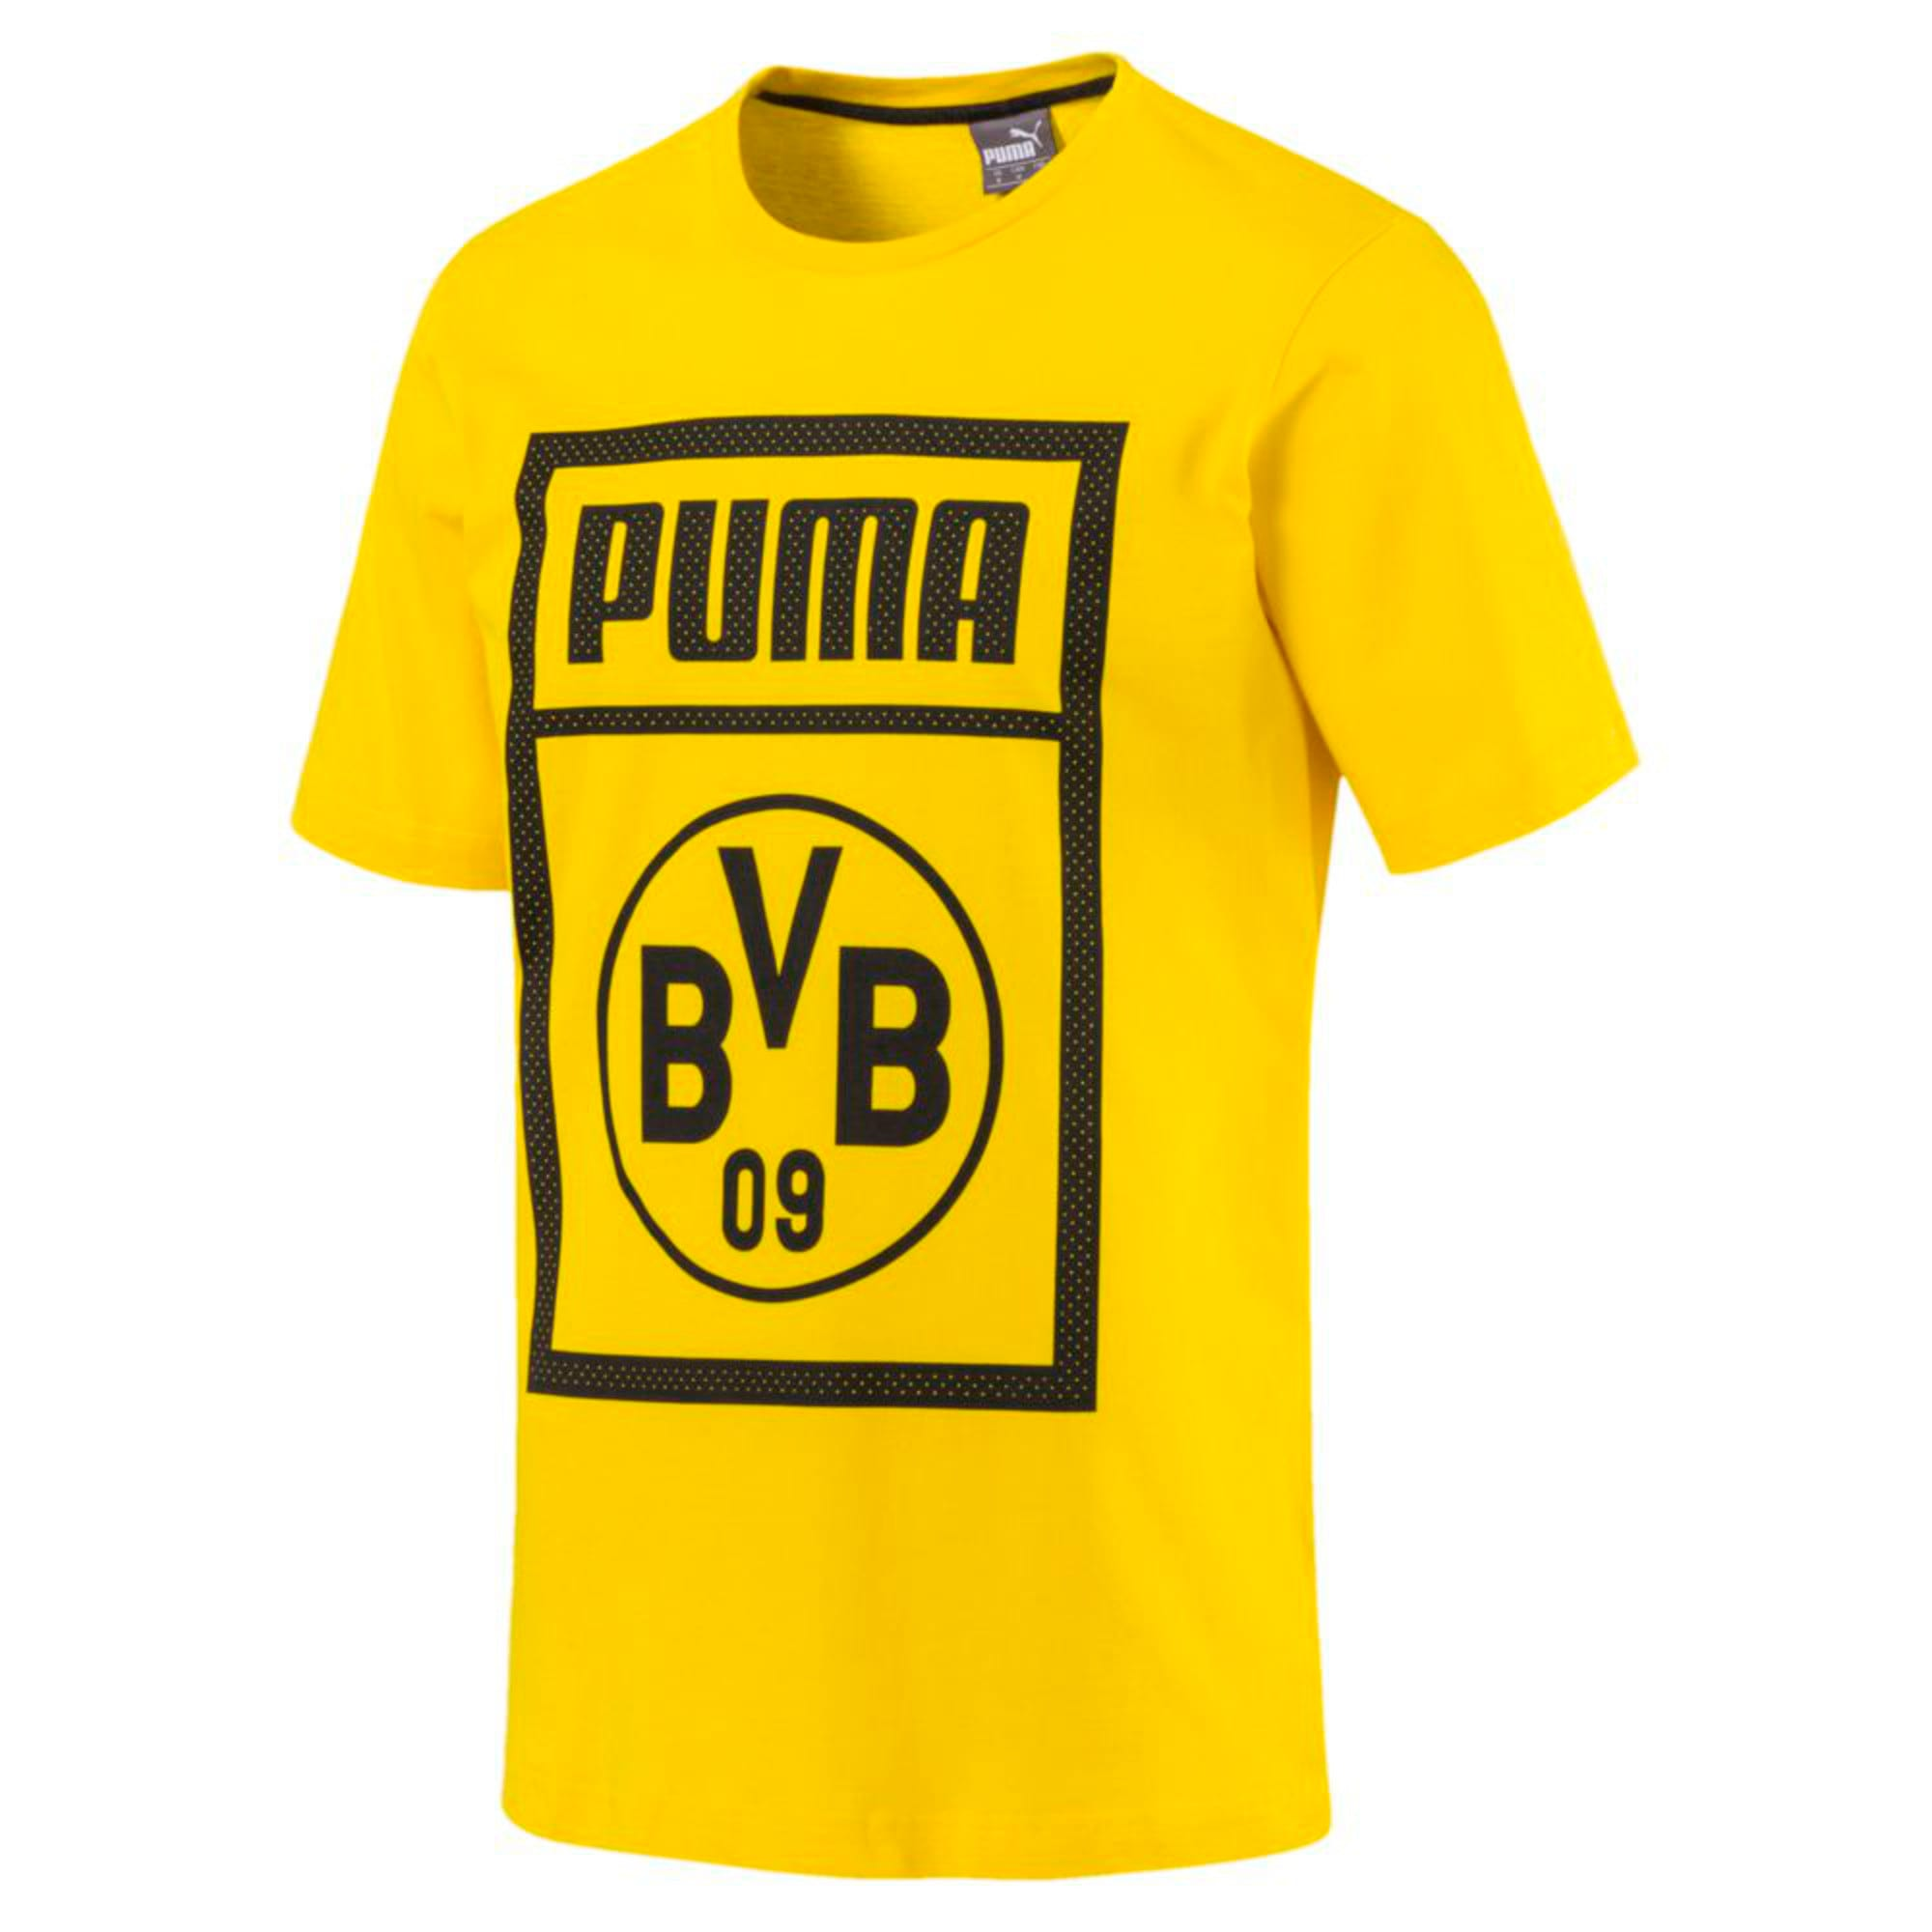 BVB Men's Shoe Tag T-Shirt, Cyber Yellow, large-IND